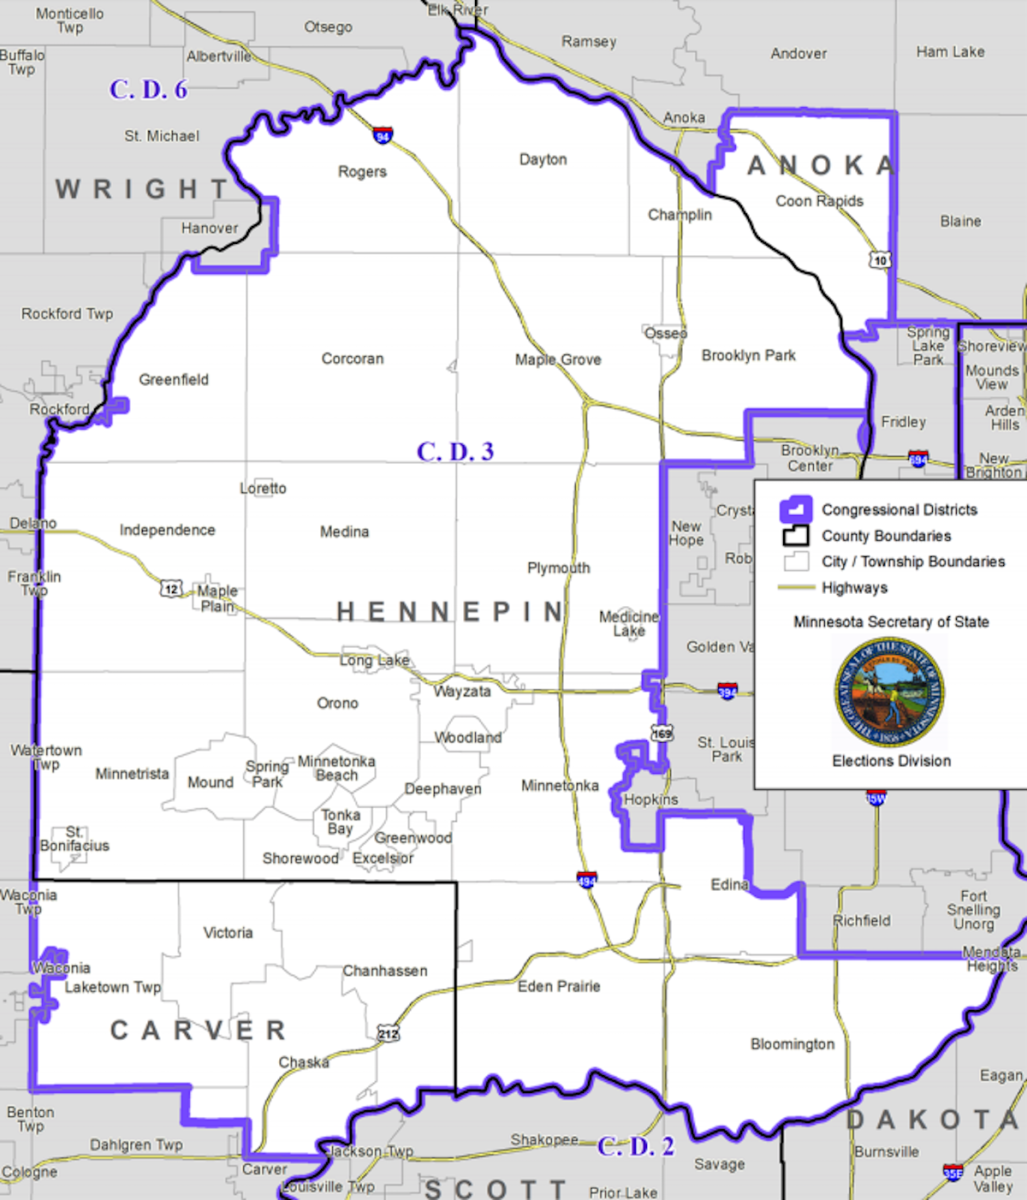 Minnesota's 3rd Congressional District encompasses much of western Hennepin County and portions of Carver and Anoka counties.